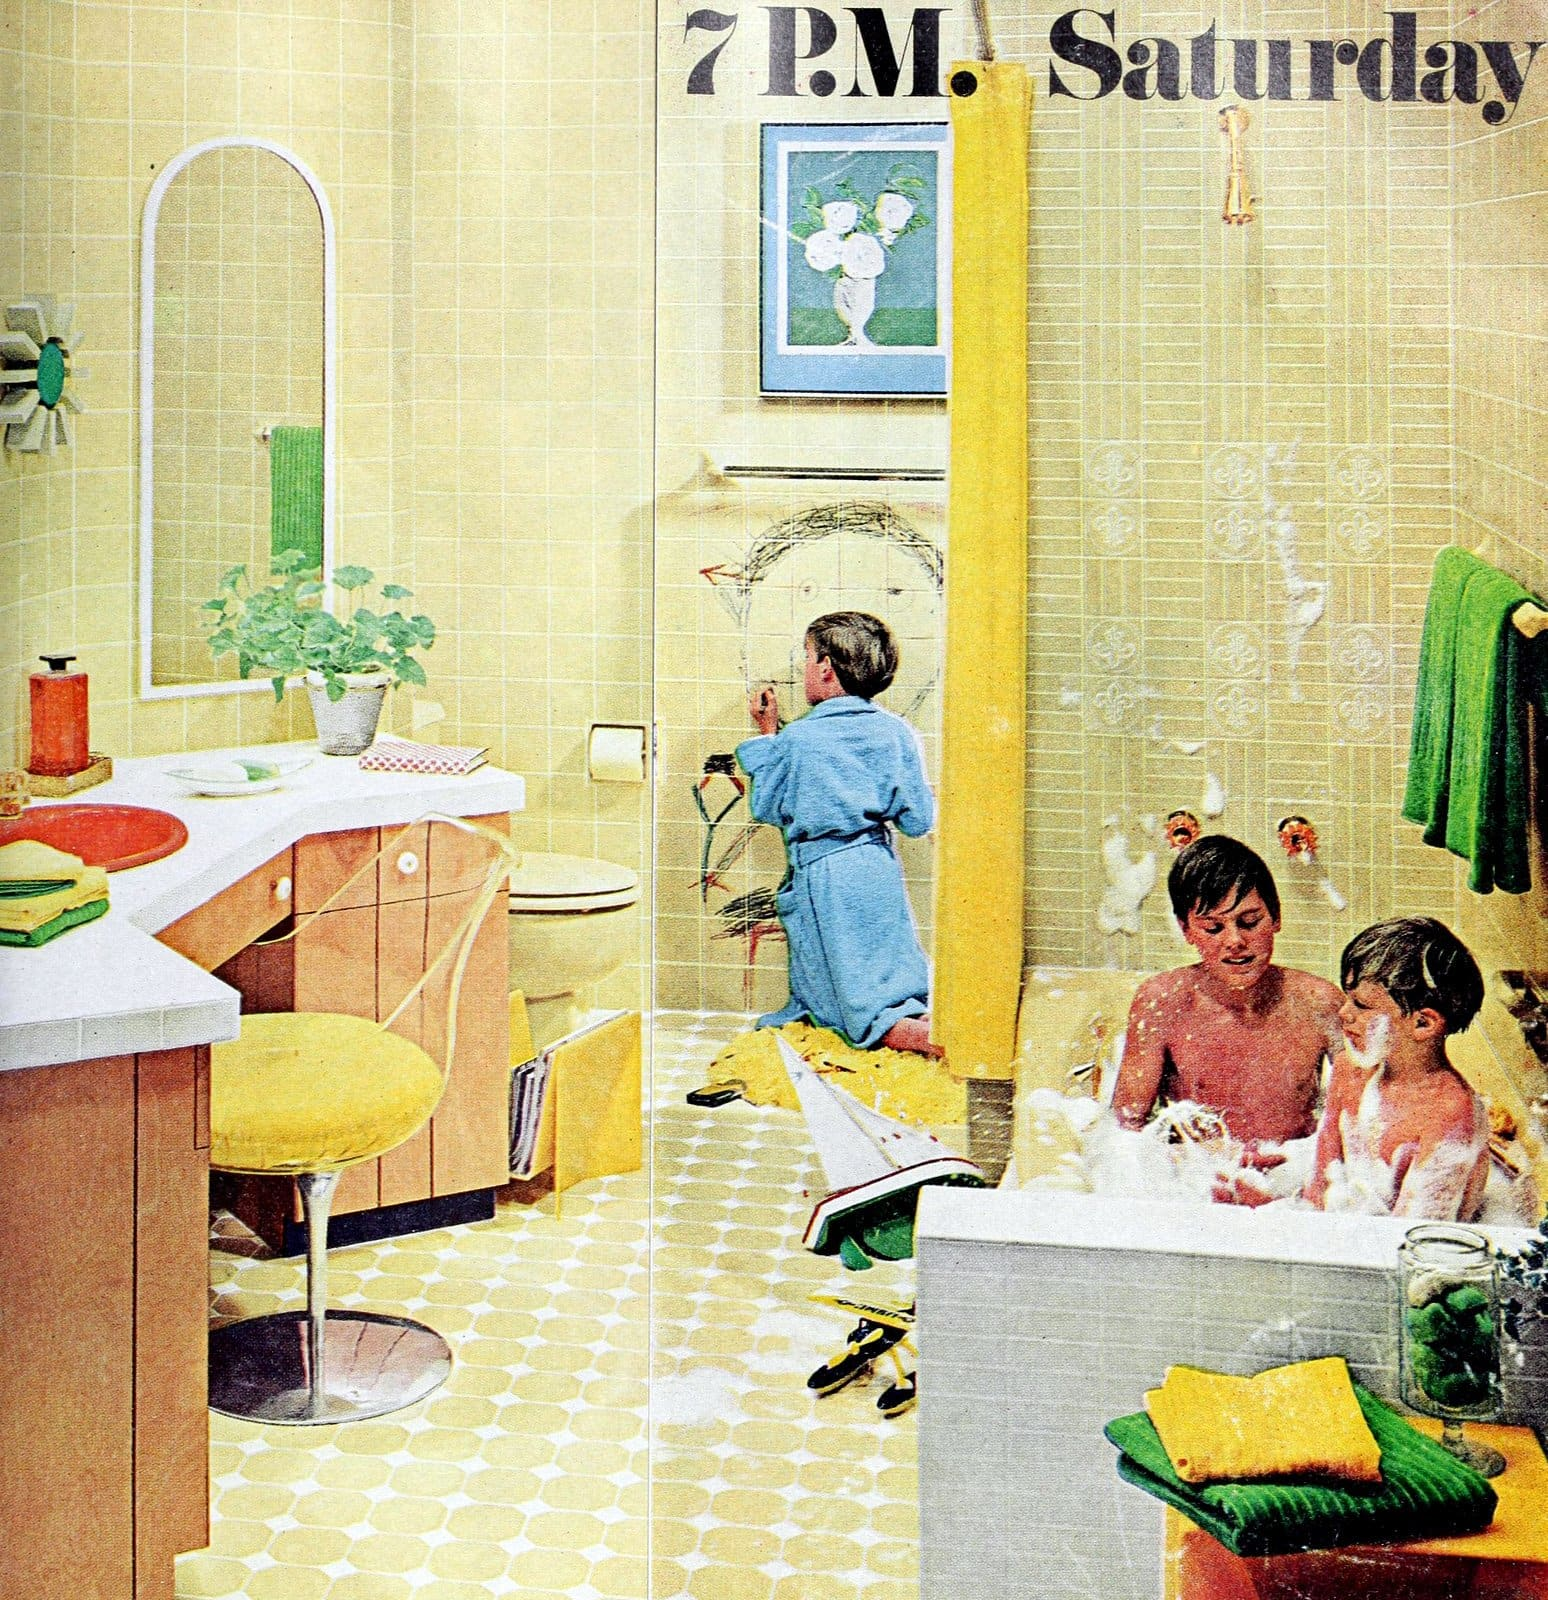 Vintage yellow tiled bathroom from 1969